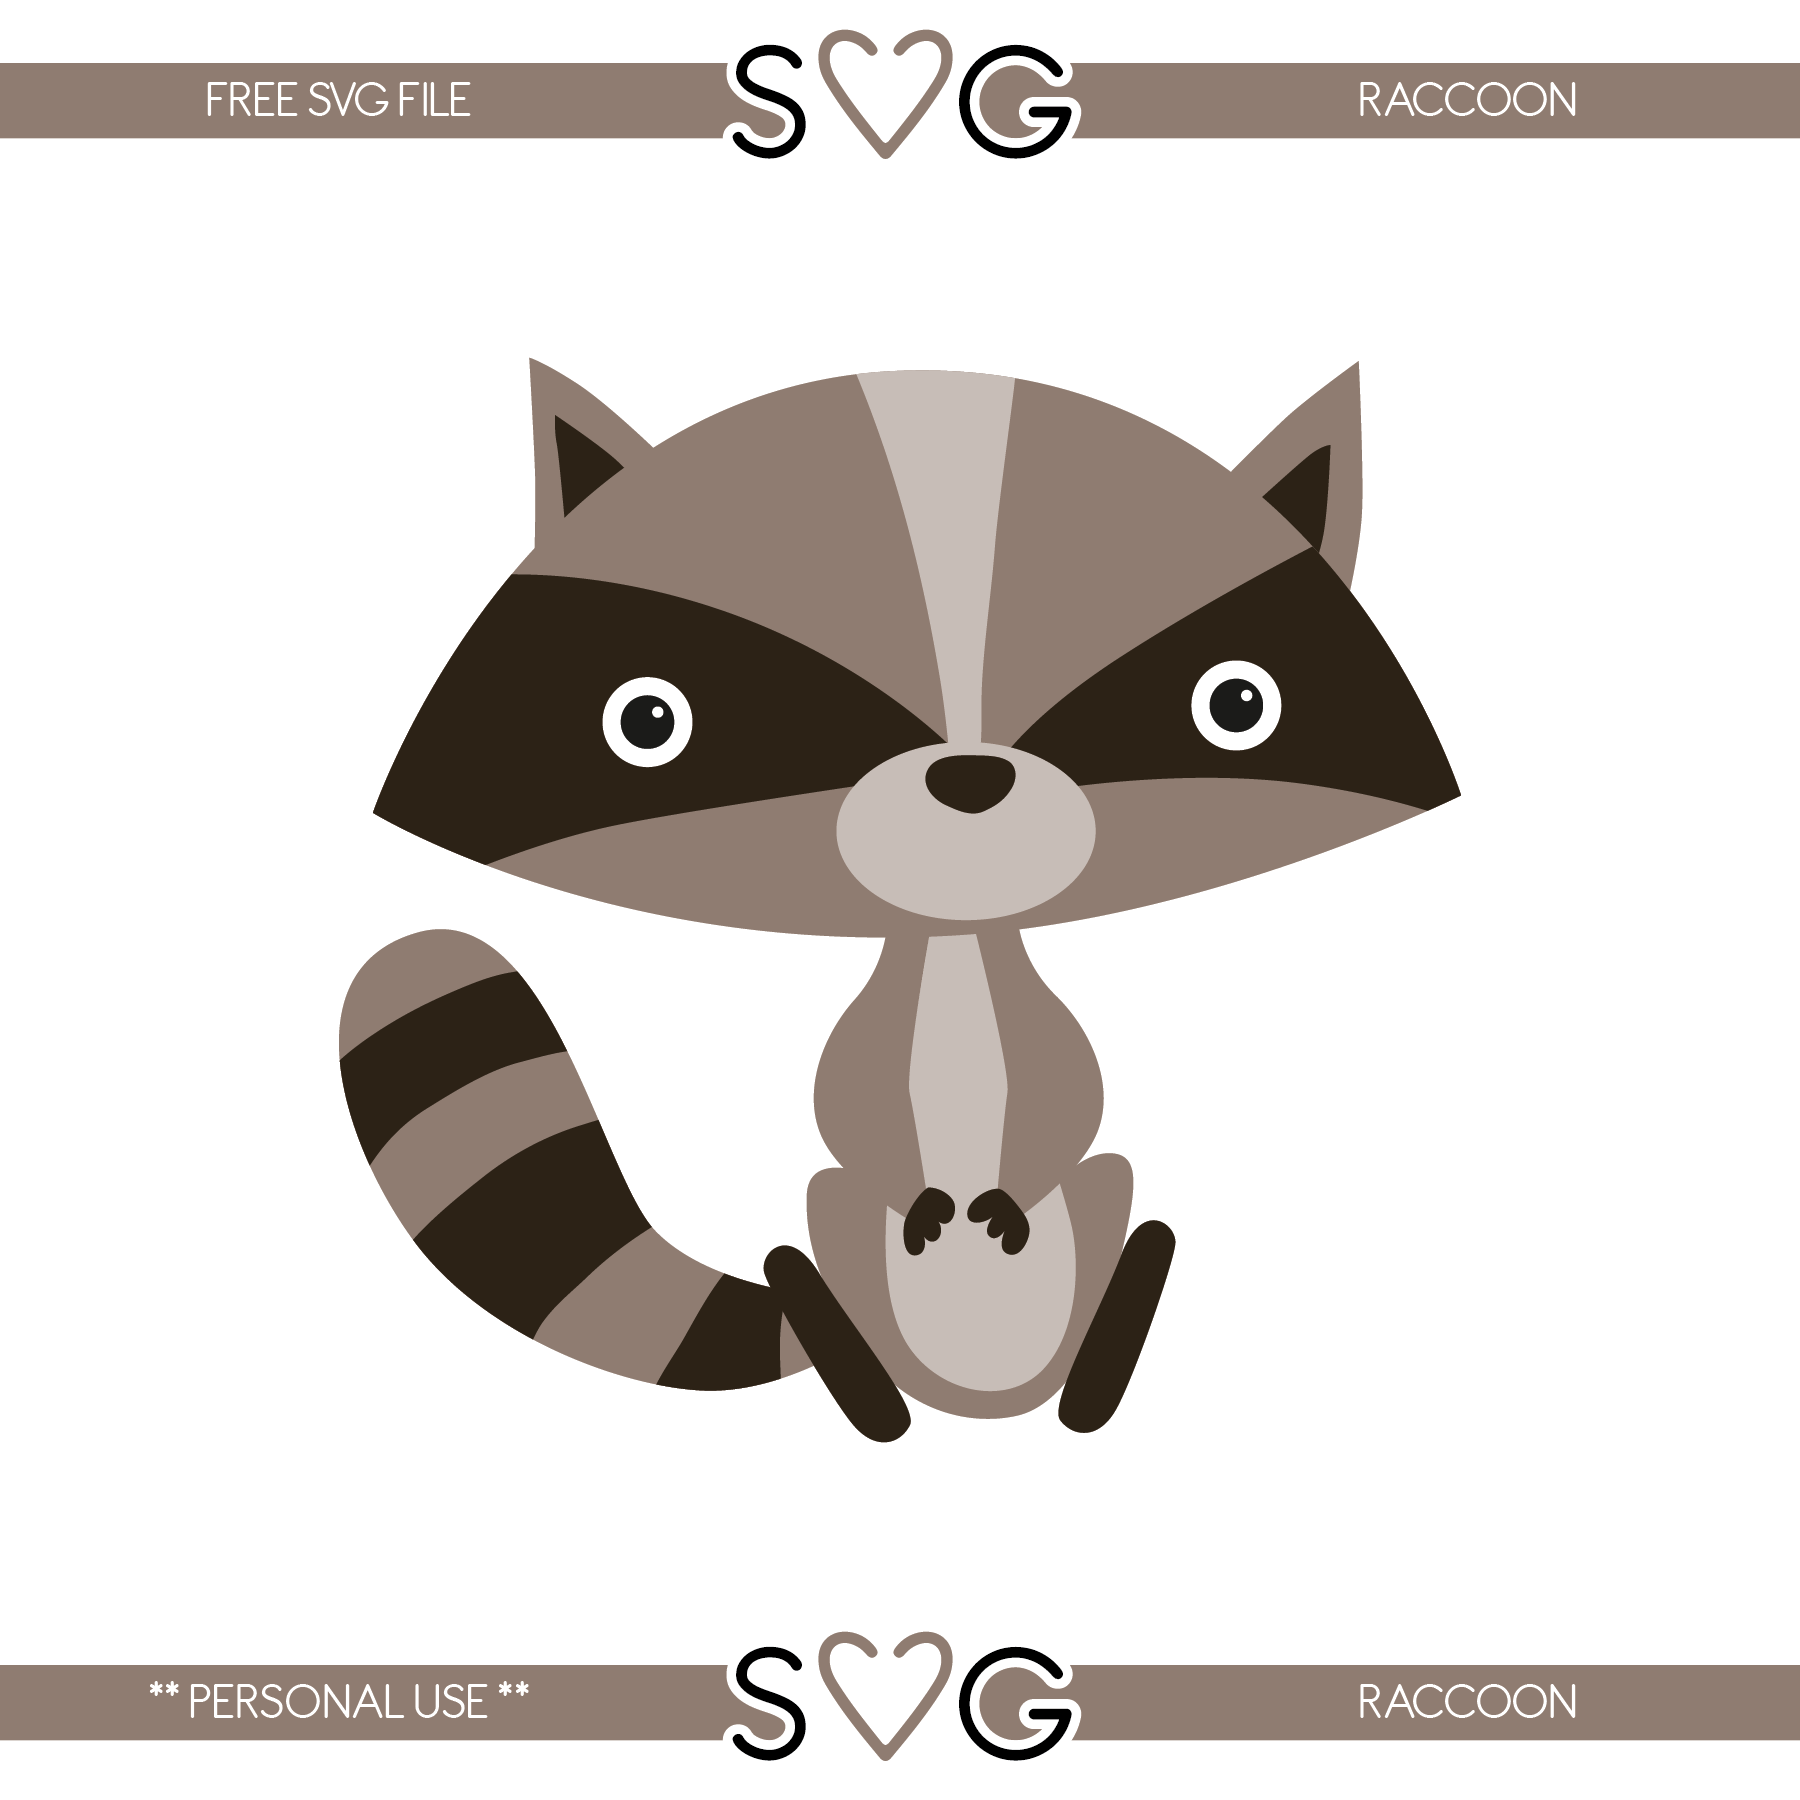 Racoon svg #20, Download drawings